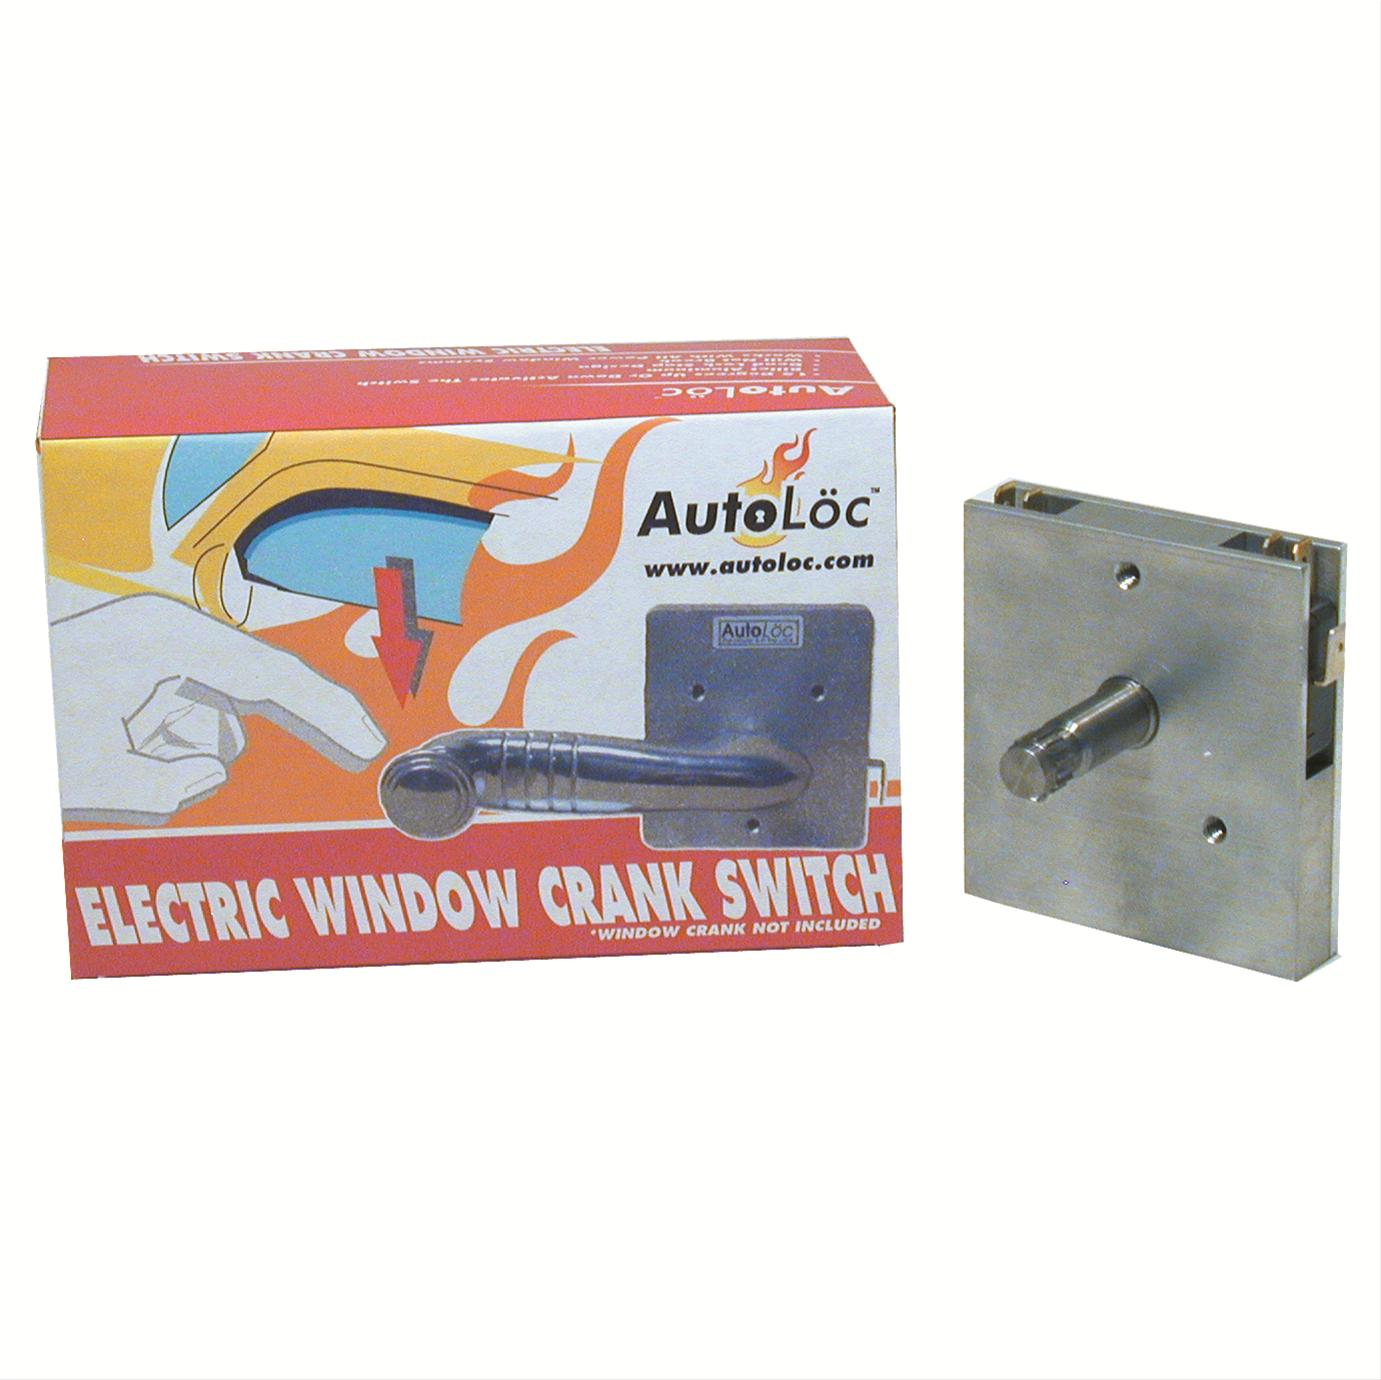 HFM AUTEWSU_xl autoloc electric window crank switches 564555 free shipping on autoloc power window switch wiring diagram at creativeand.co